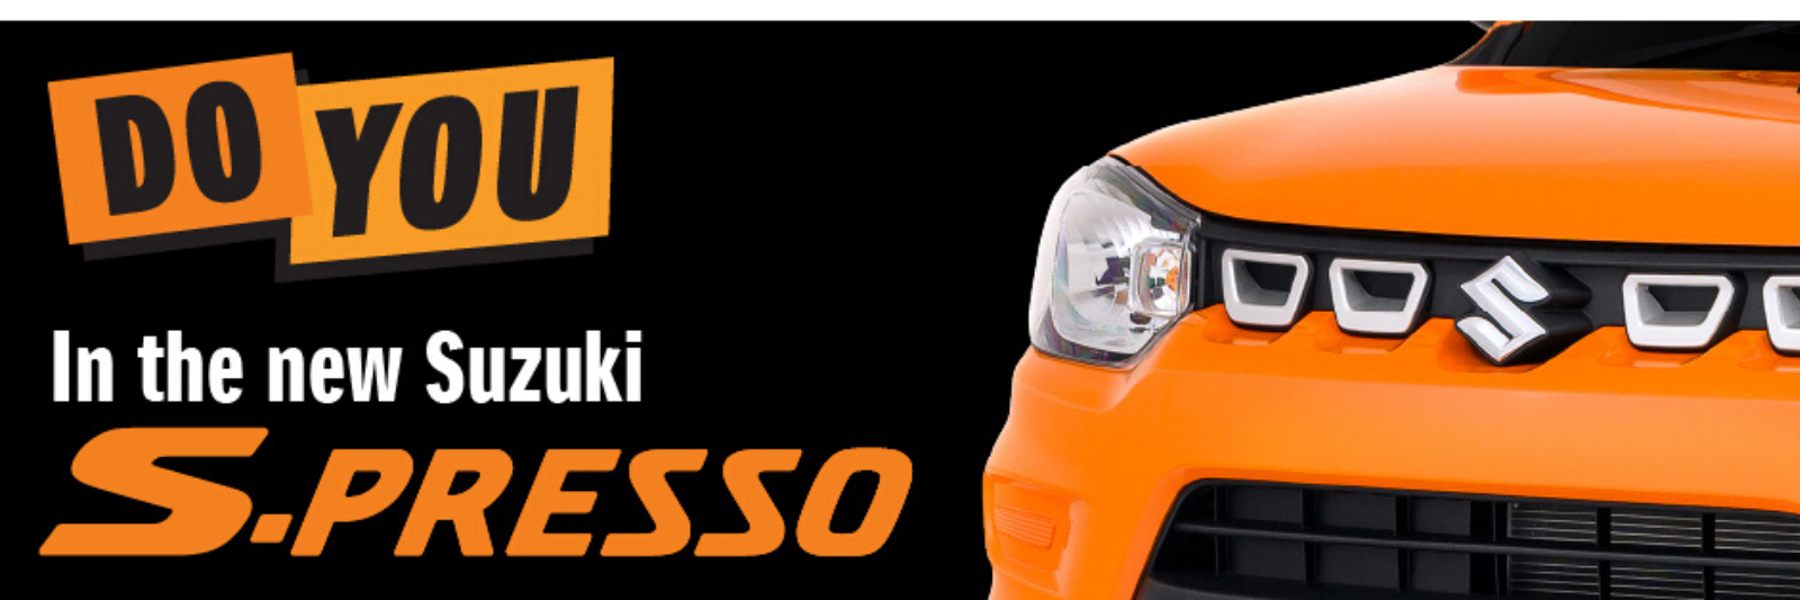 S-Presso - the new SUV-inspired Suzuki